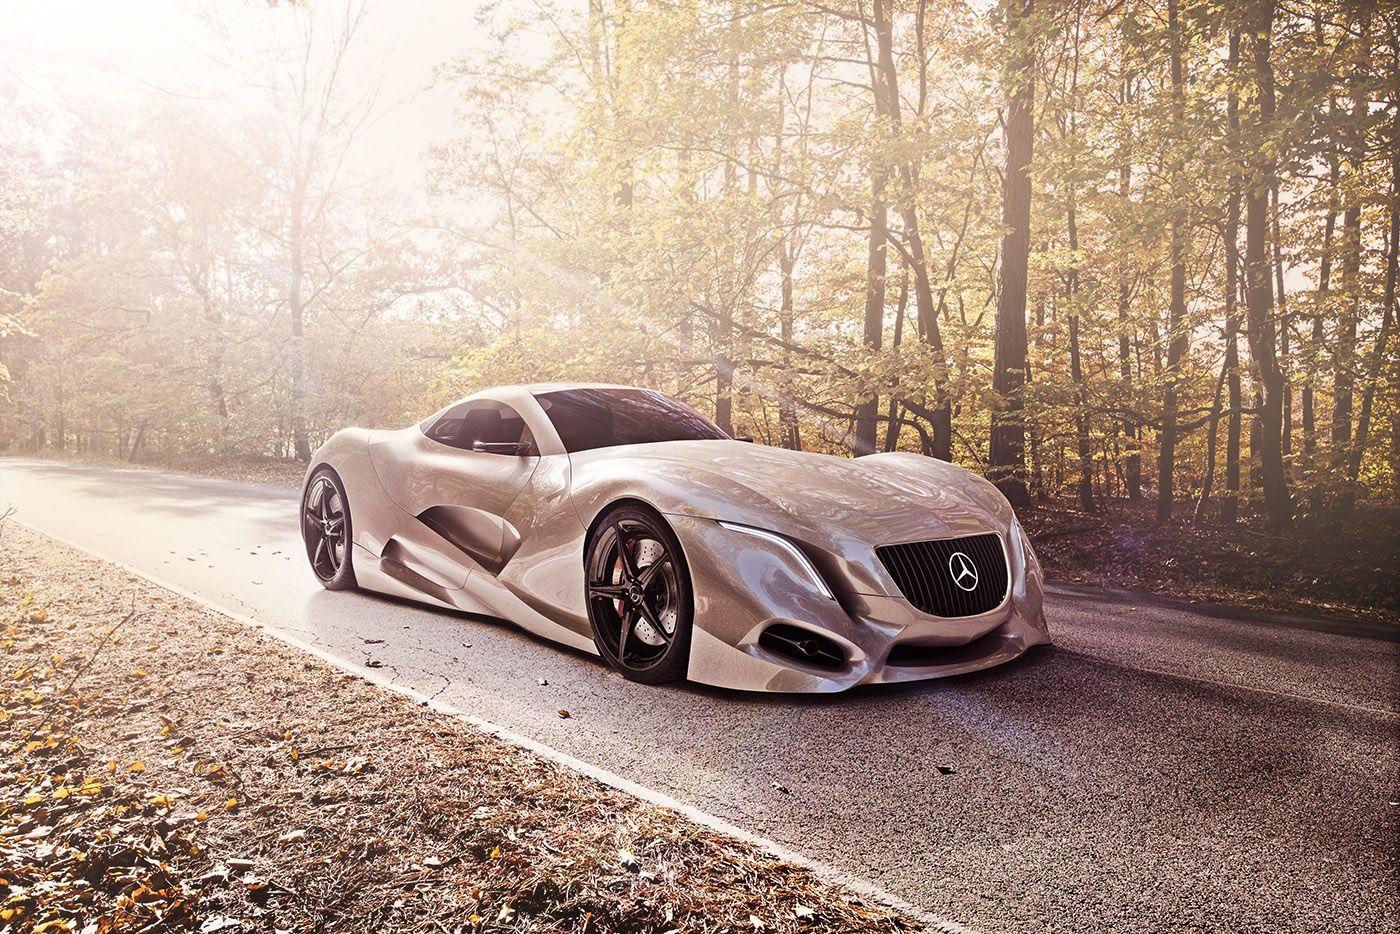 Mercedes I On Behance Cars Pinterest Maybach And Cars - Current sports cars